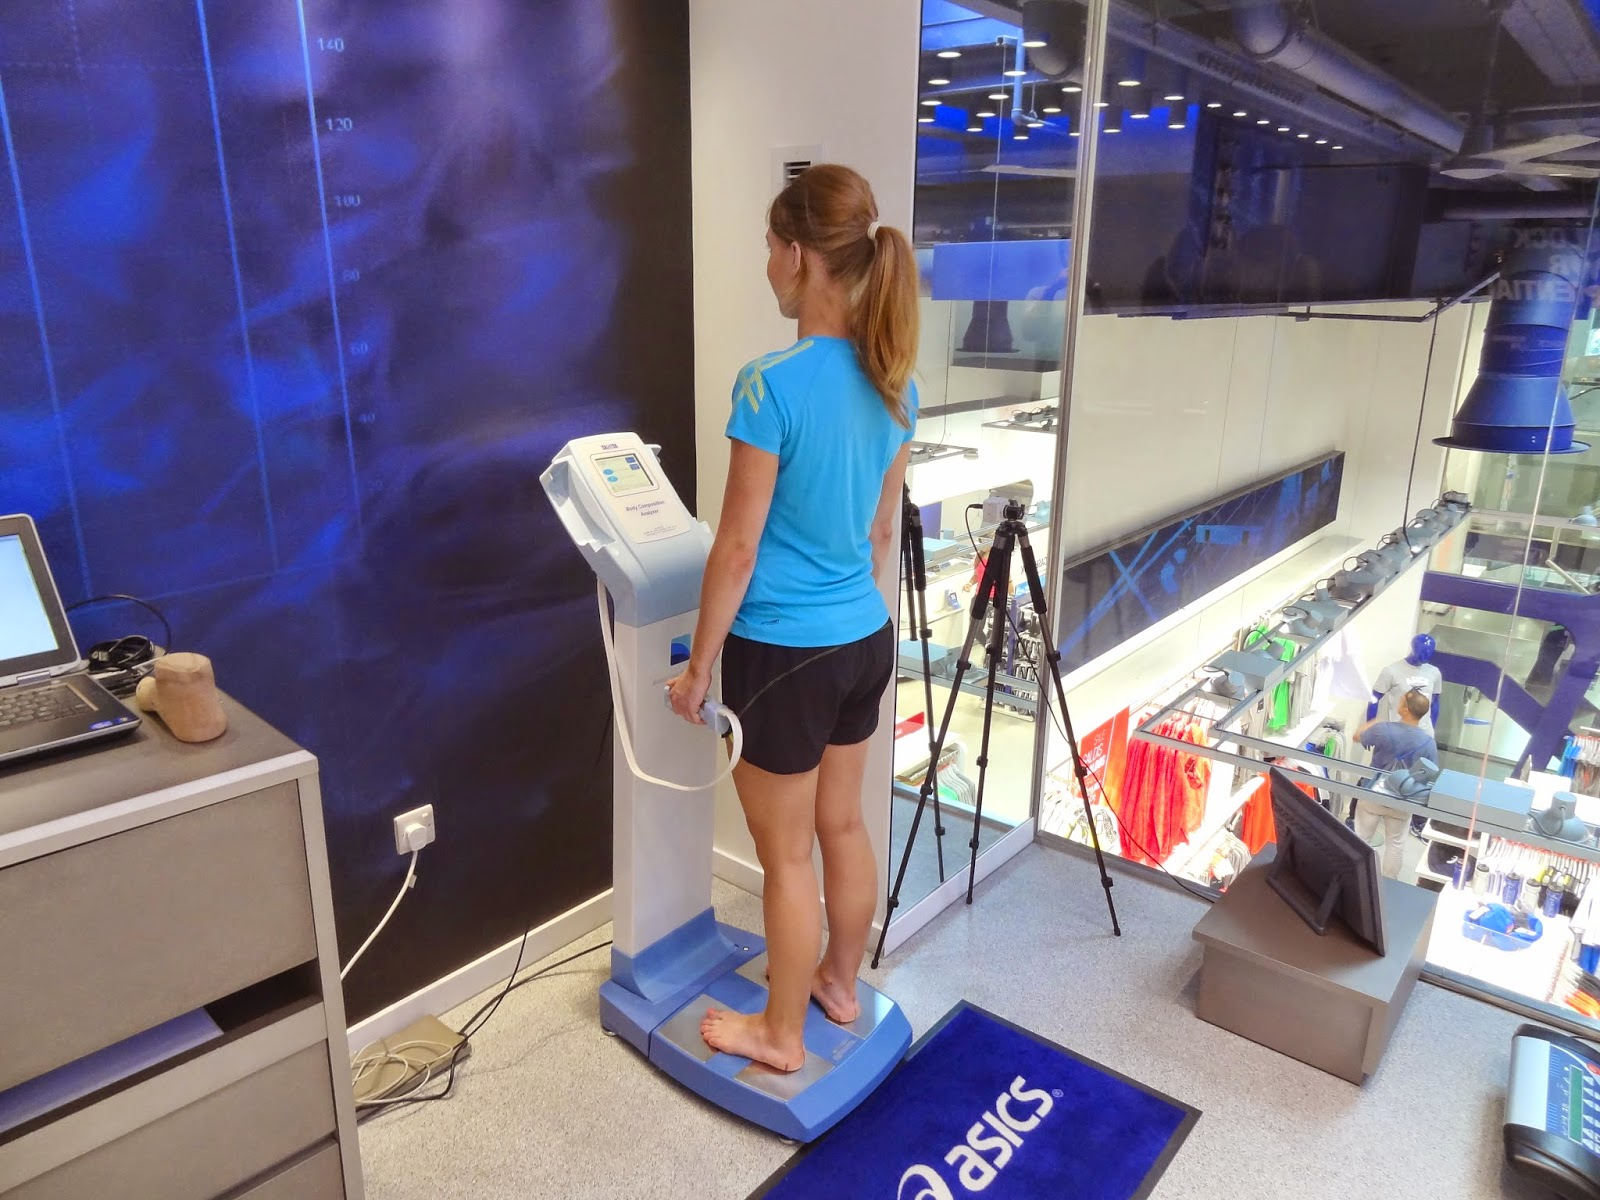 Asics_Lab_Body_Composition_Analysis_Tinita.JPG